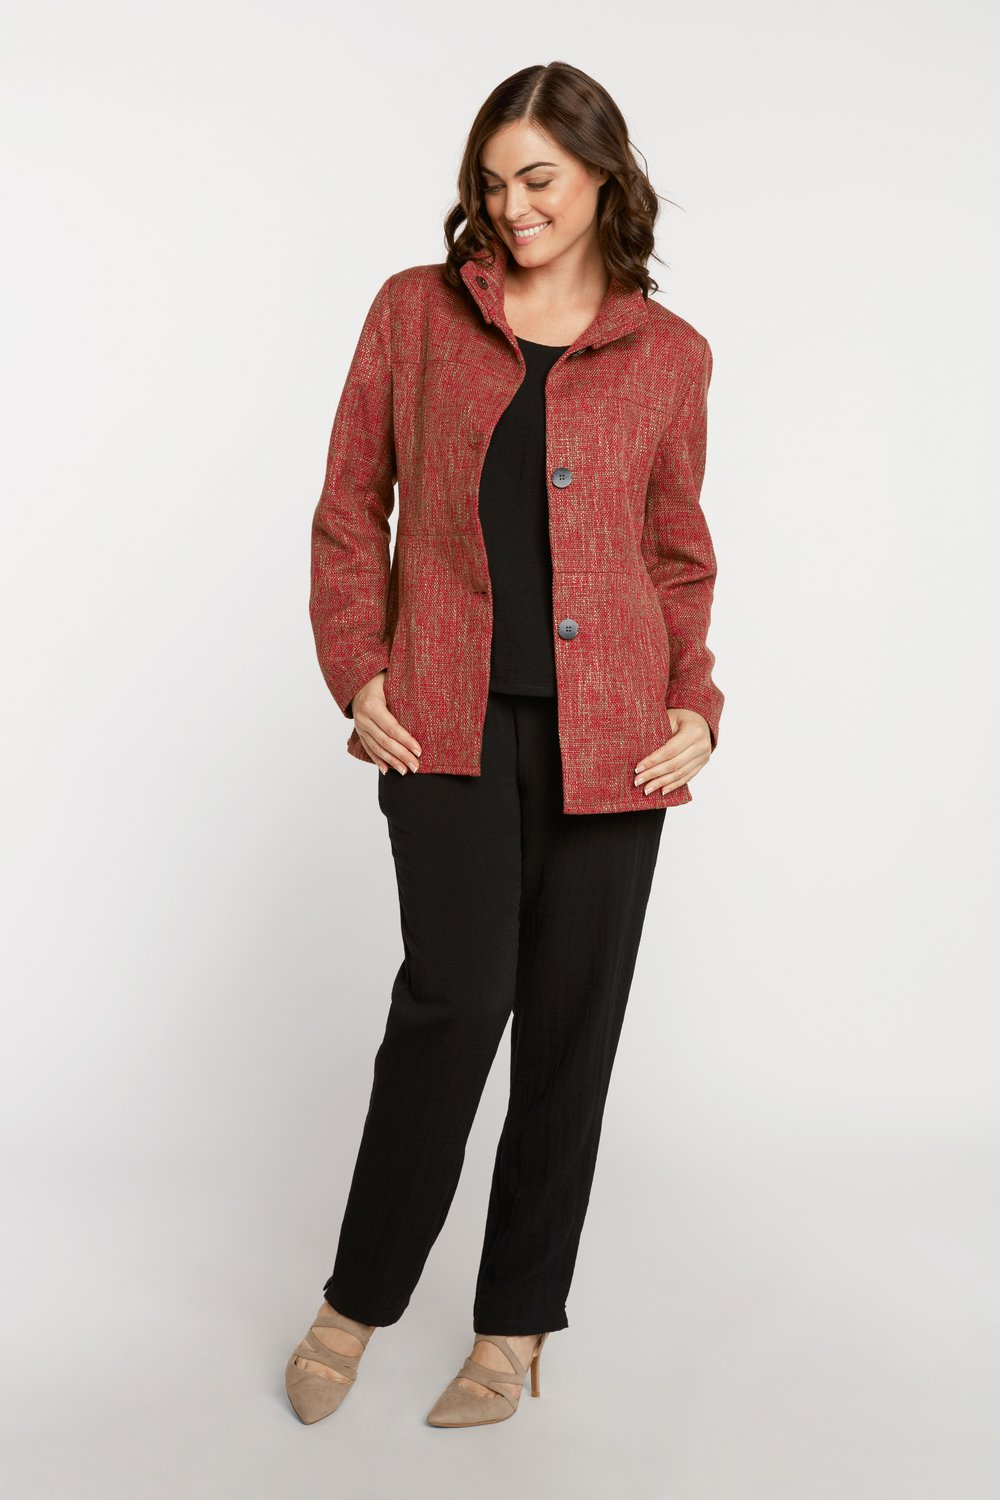 AA8006 - Jacqueline Jacket    SG01 - Red & Tan